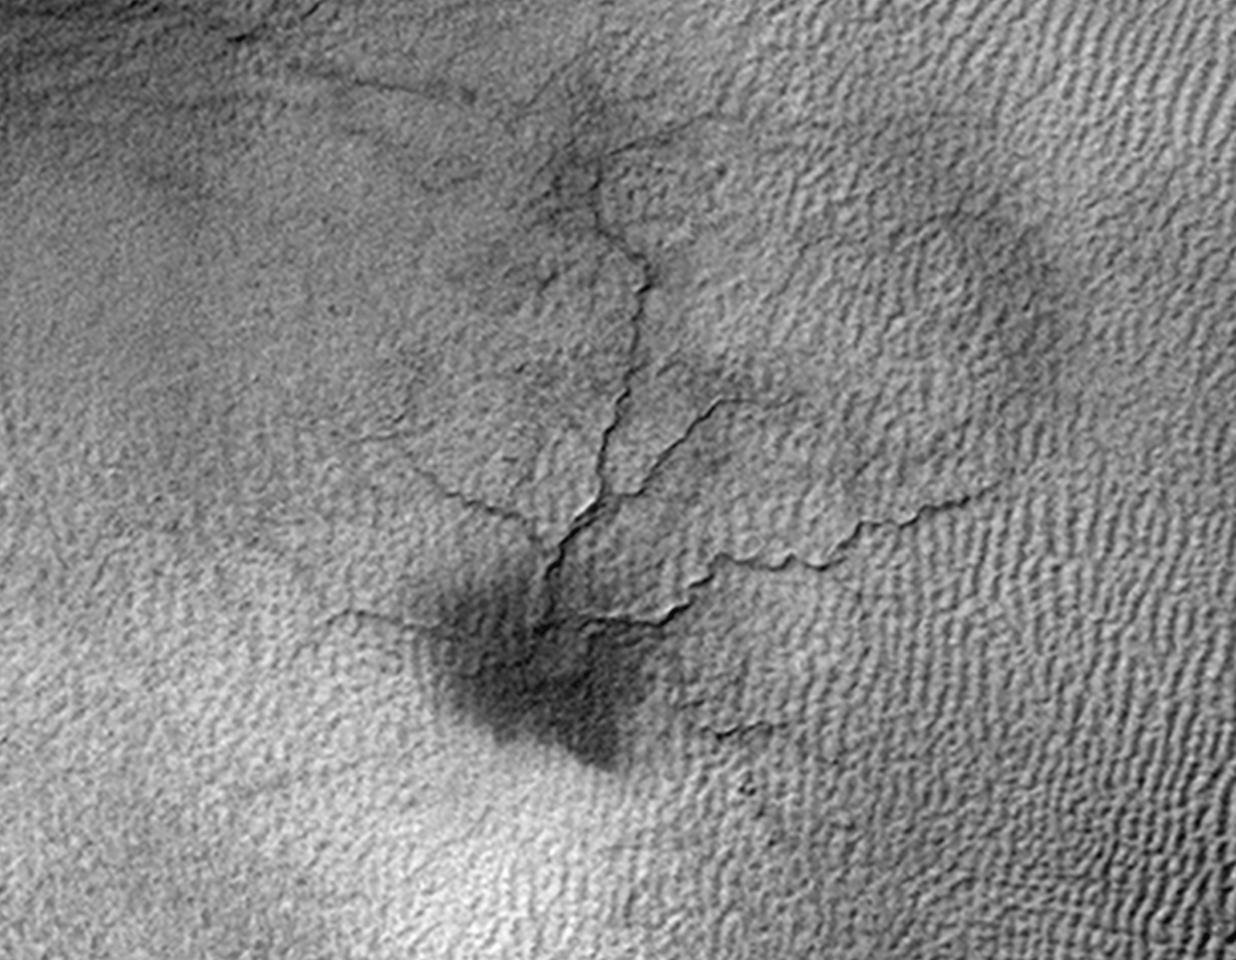 A spider-like surface feature on Mars that scientists believe is caused by thawing carbon dioxide ice